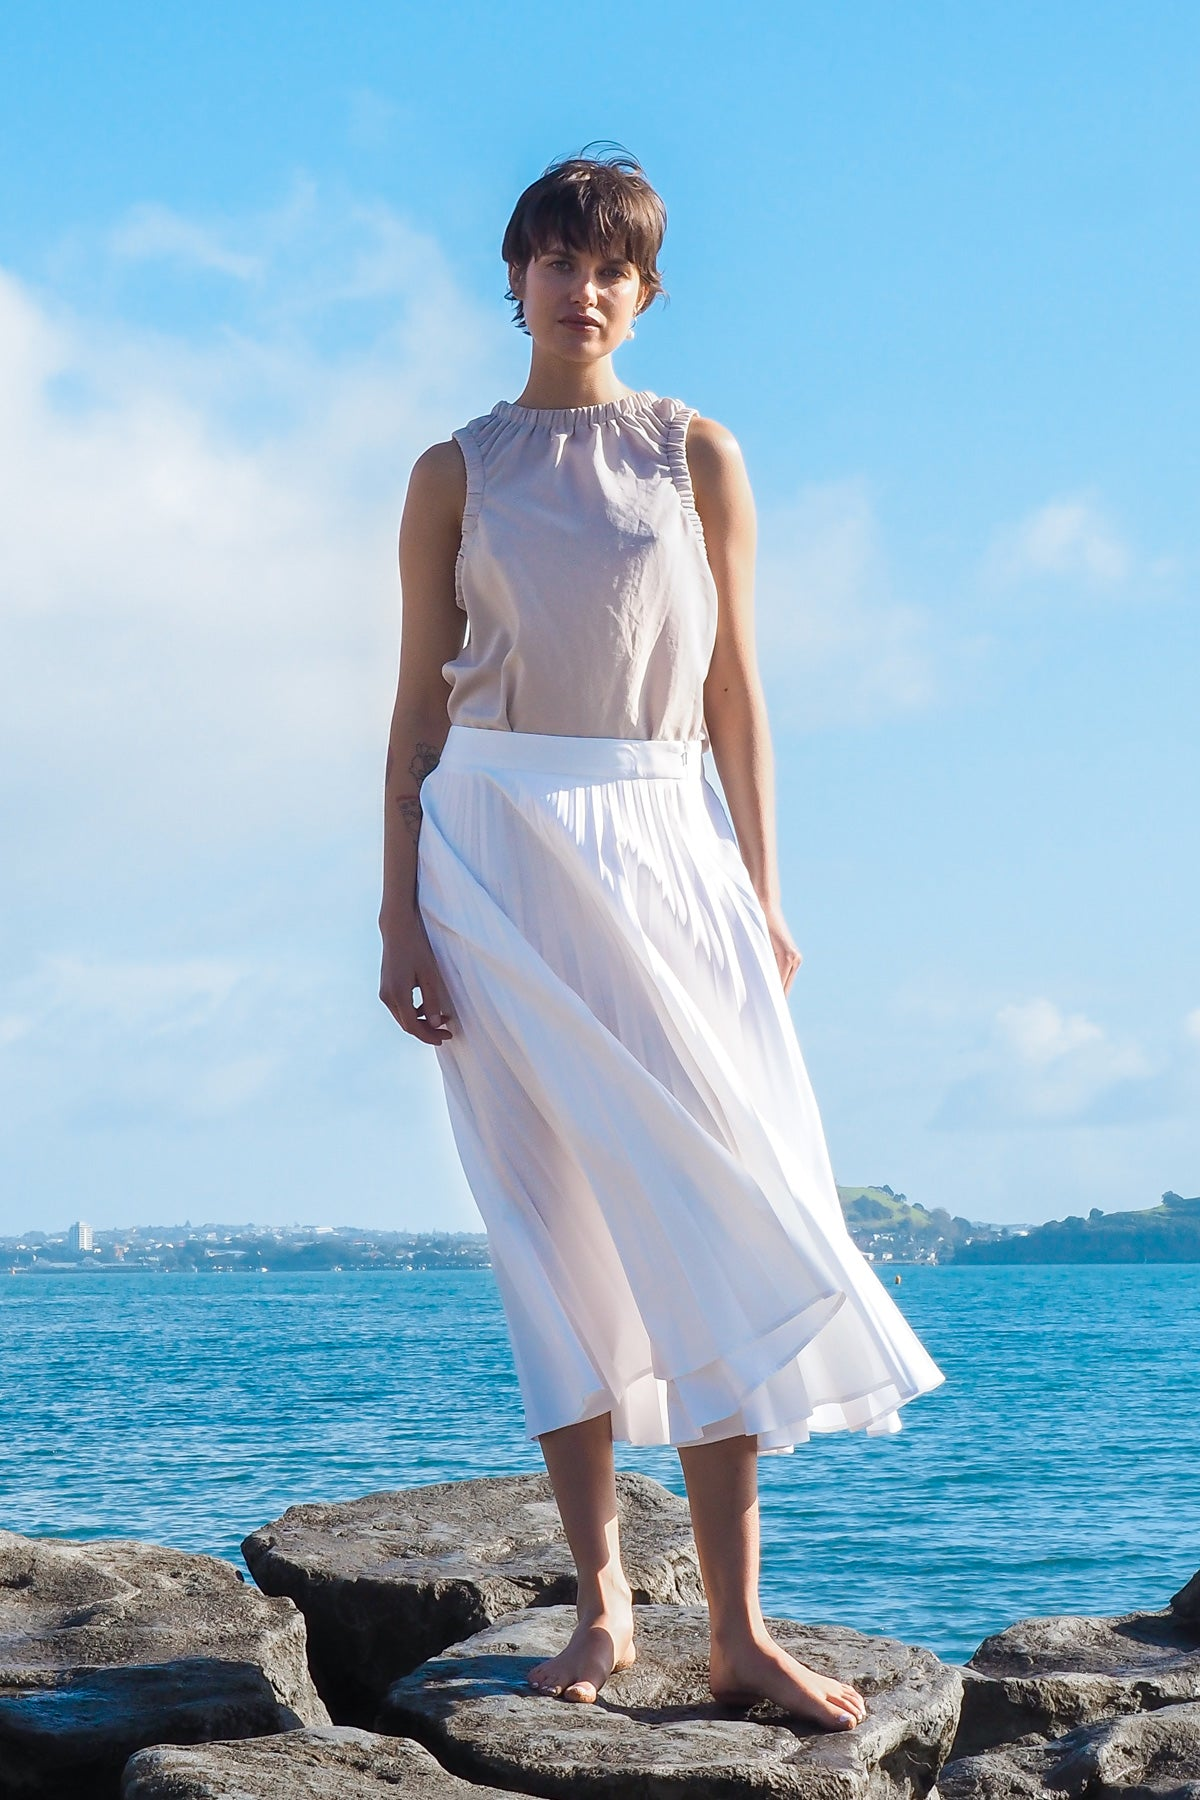 Gregory SS20 Crow Skirt Pleated Made in NZGregory SS20 Crow Skirt Pleated Made in NZ